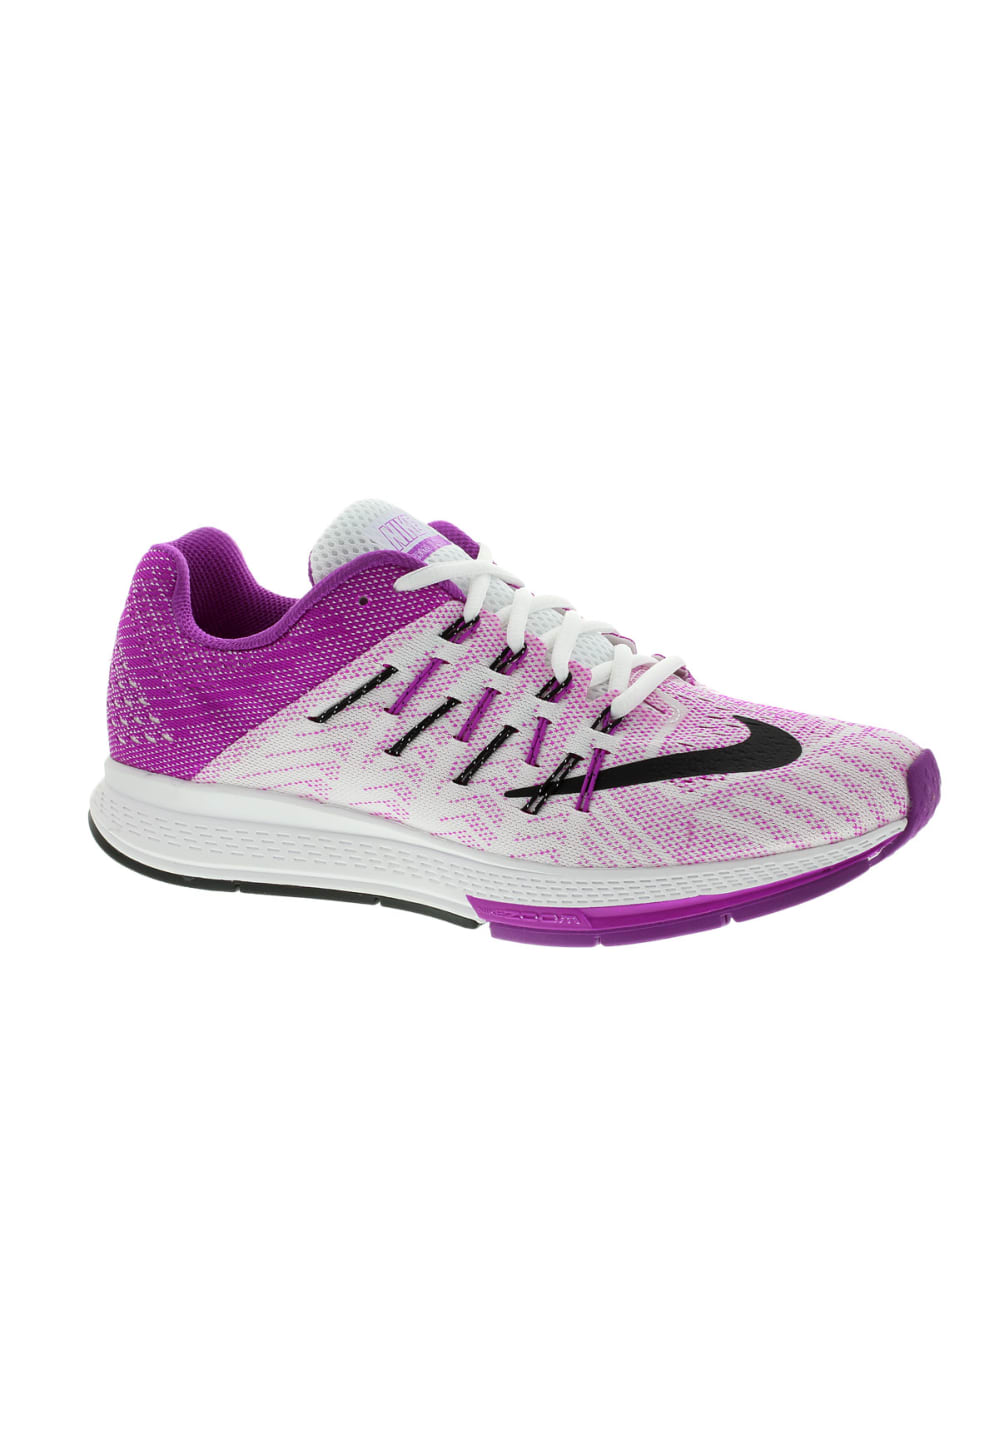 31cb9ac2bb5 Nike Air Zoom Elite 8 - Running shoes for Women - Purple